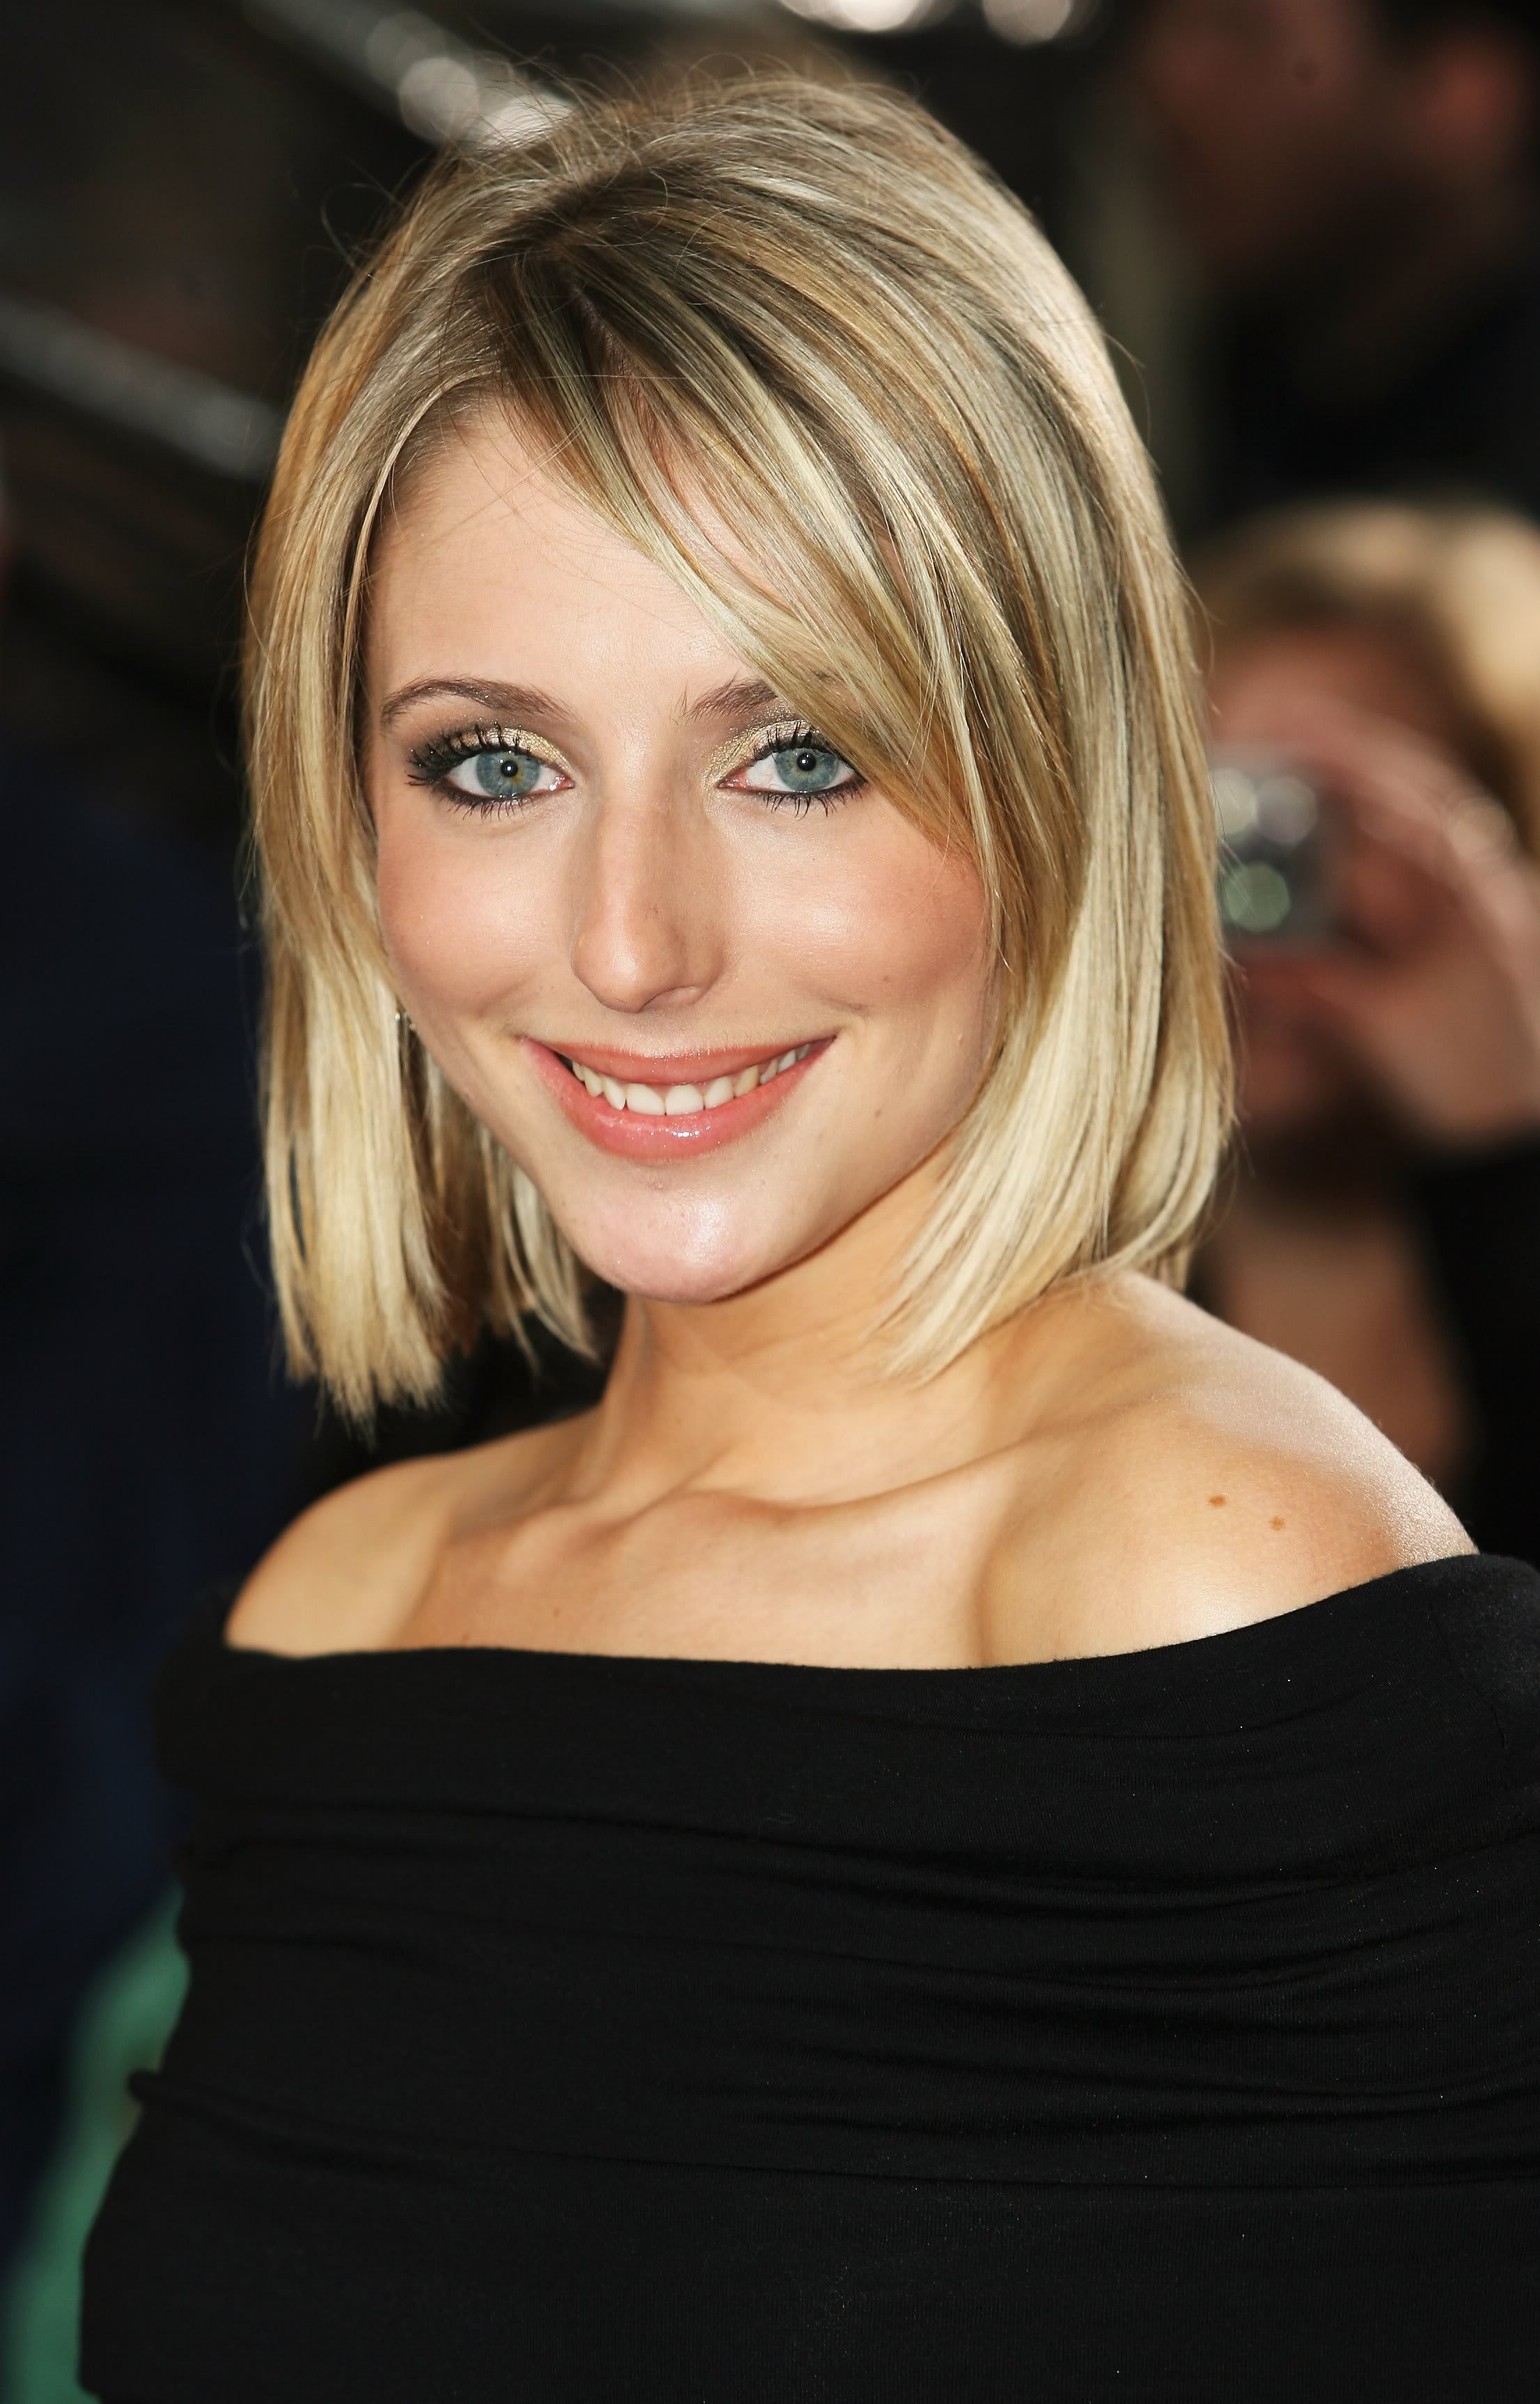 photo Ali Bastian (born 1982)